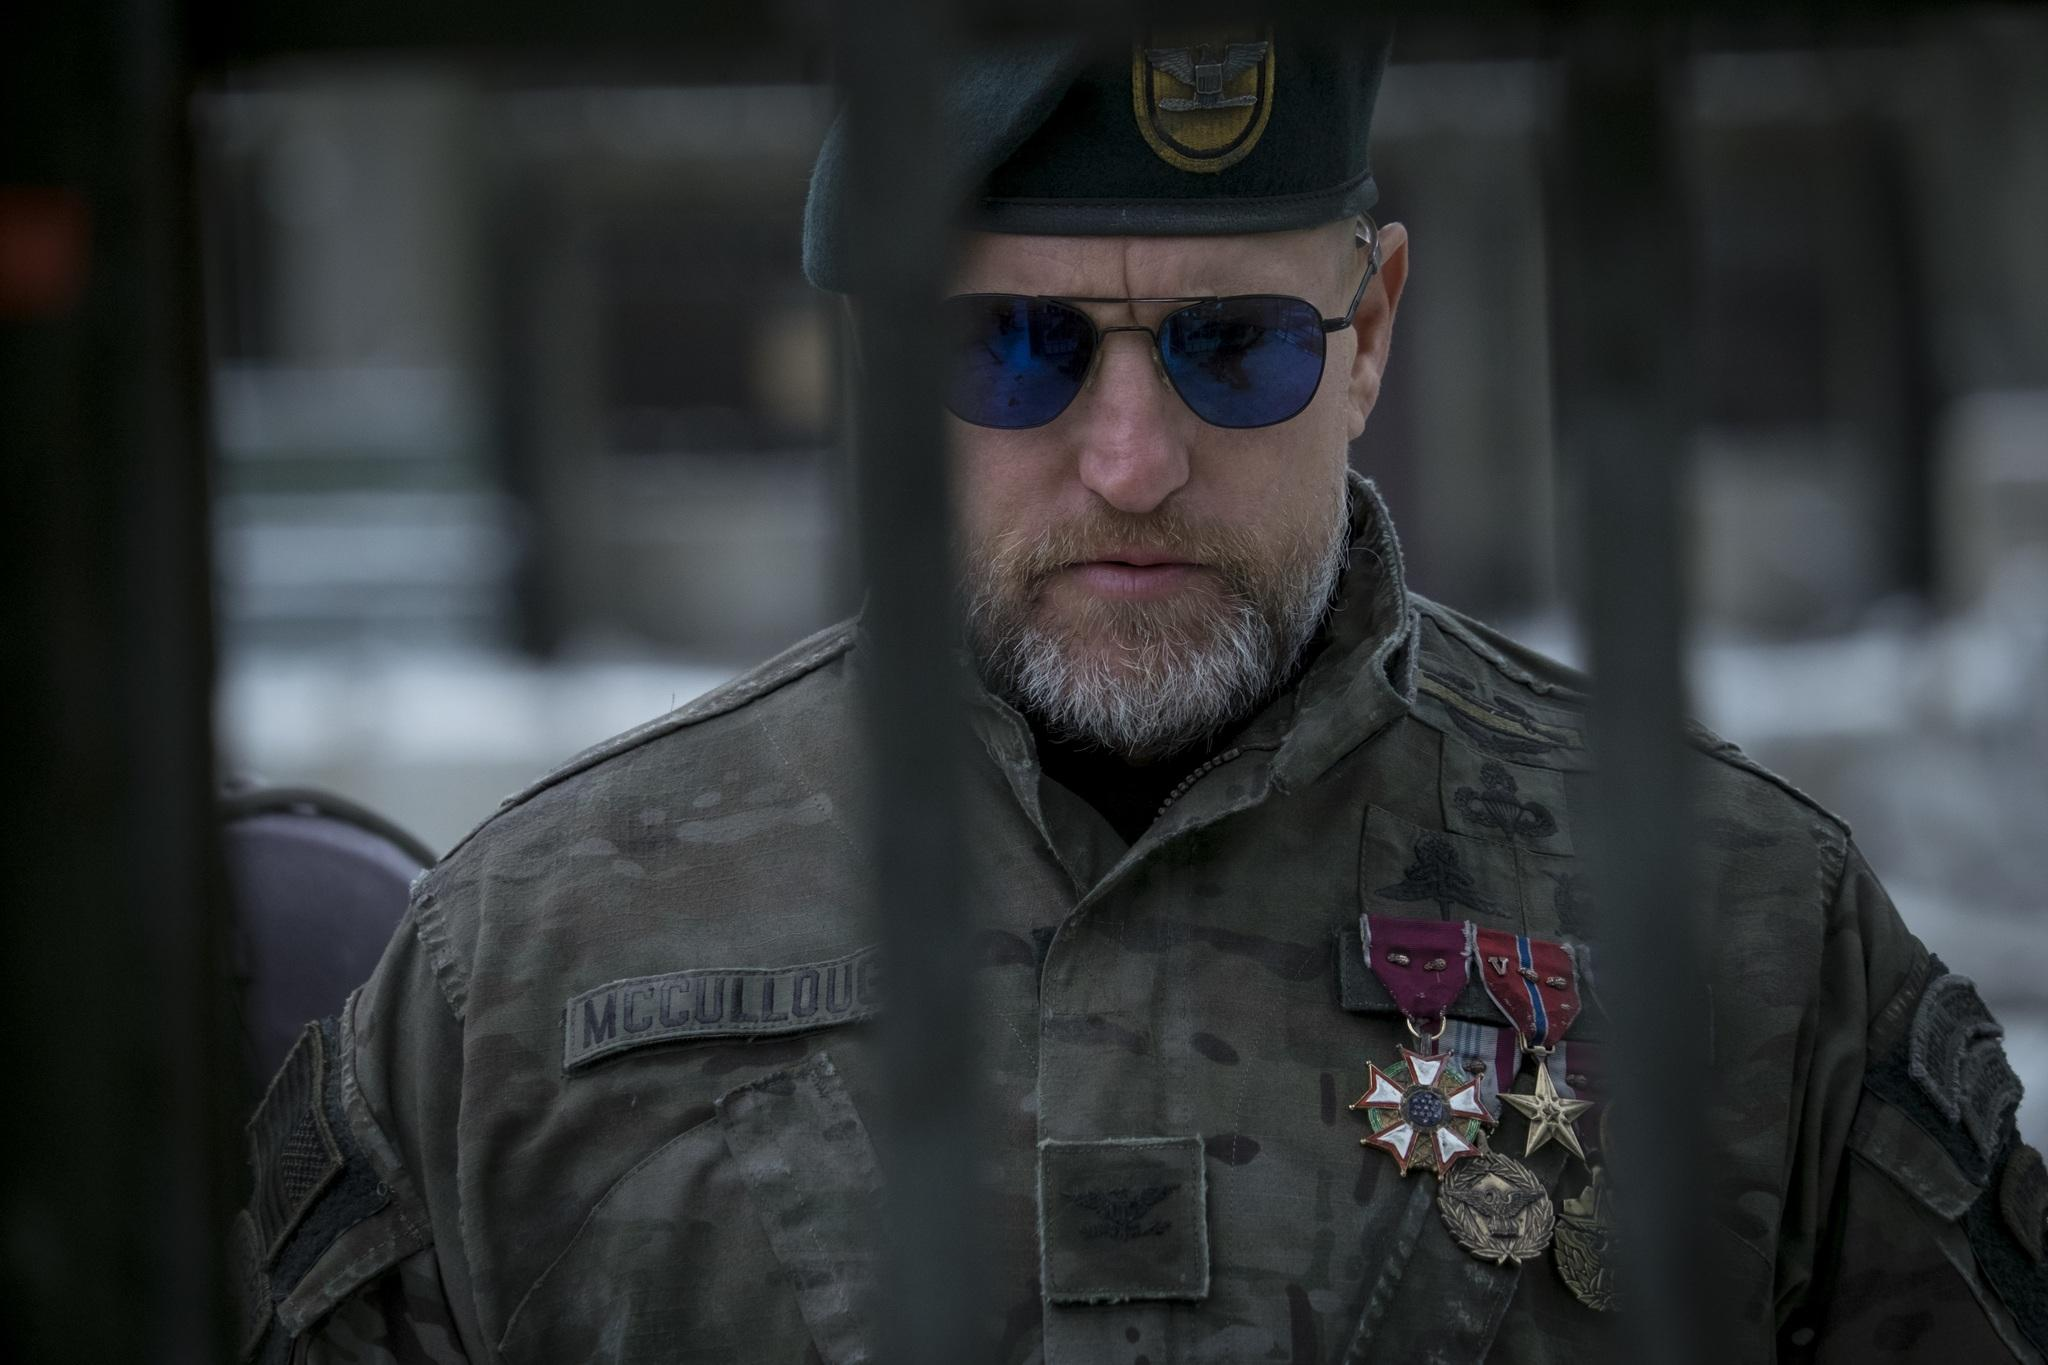 Woody Harrelson as The Colonel in War for the Planet of the Apes (2017)